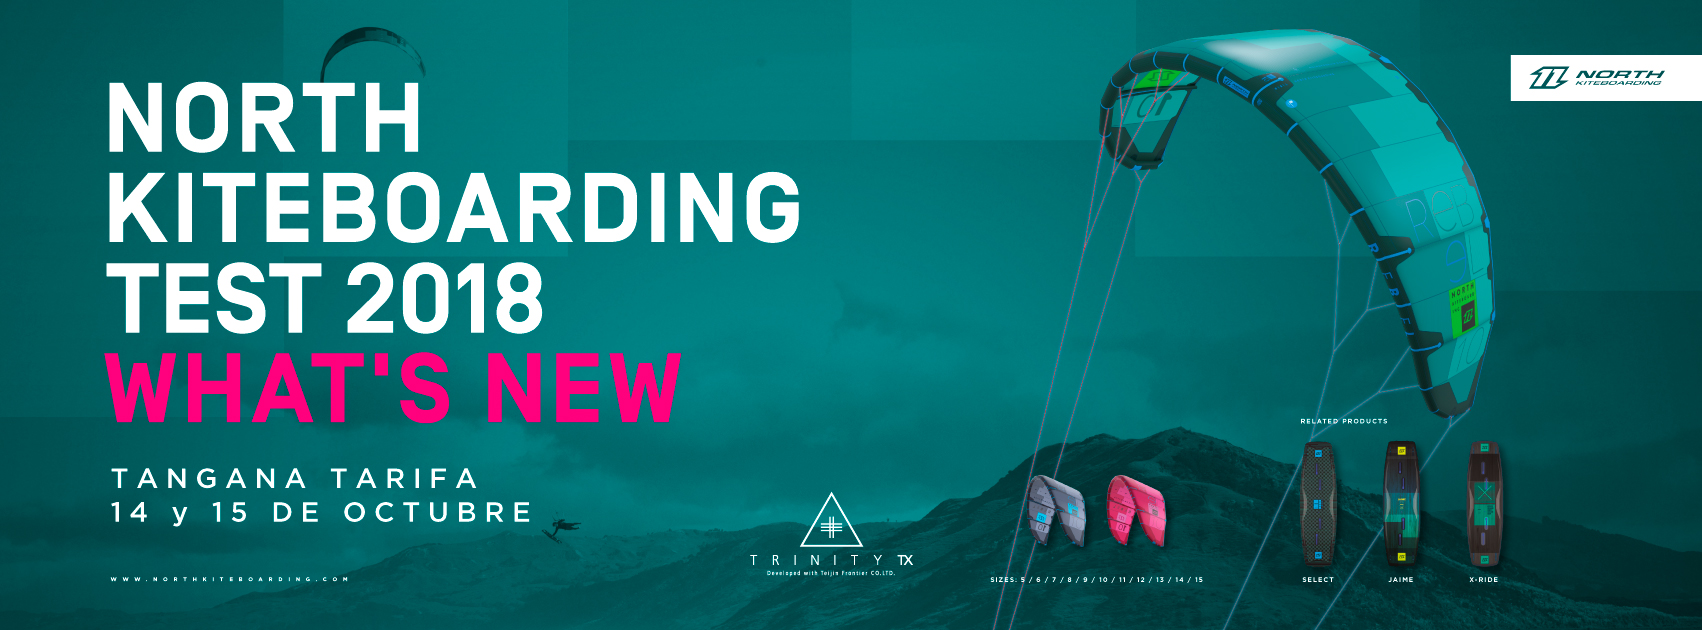 test-2018-north-kiteboarding-tarifa-